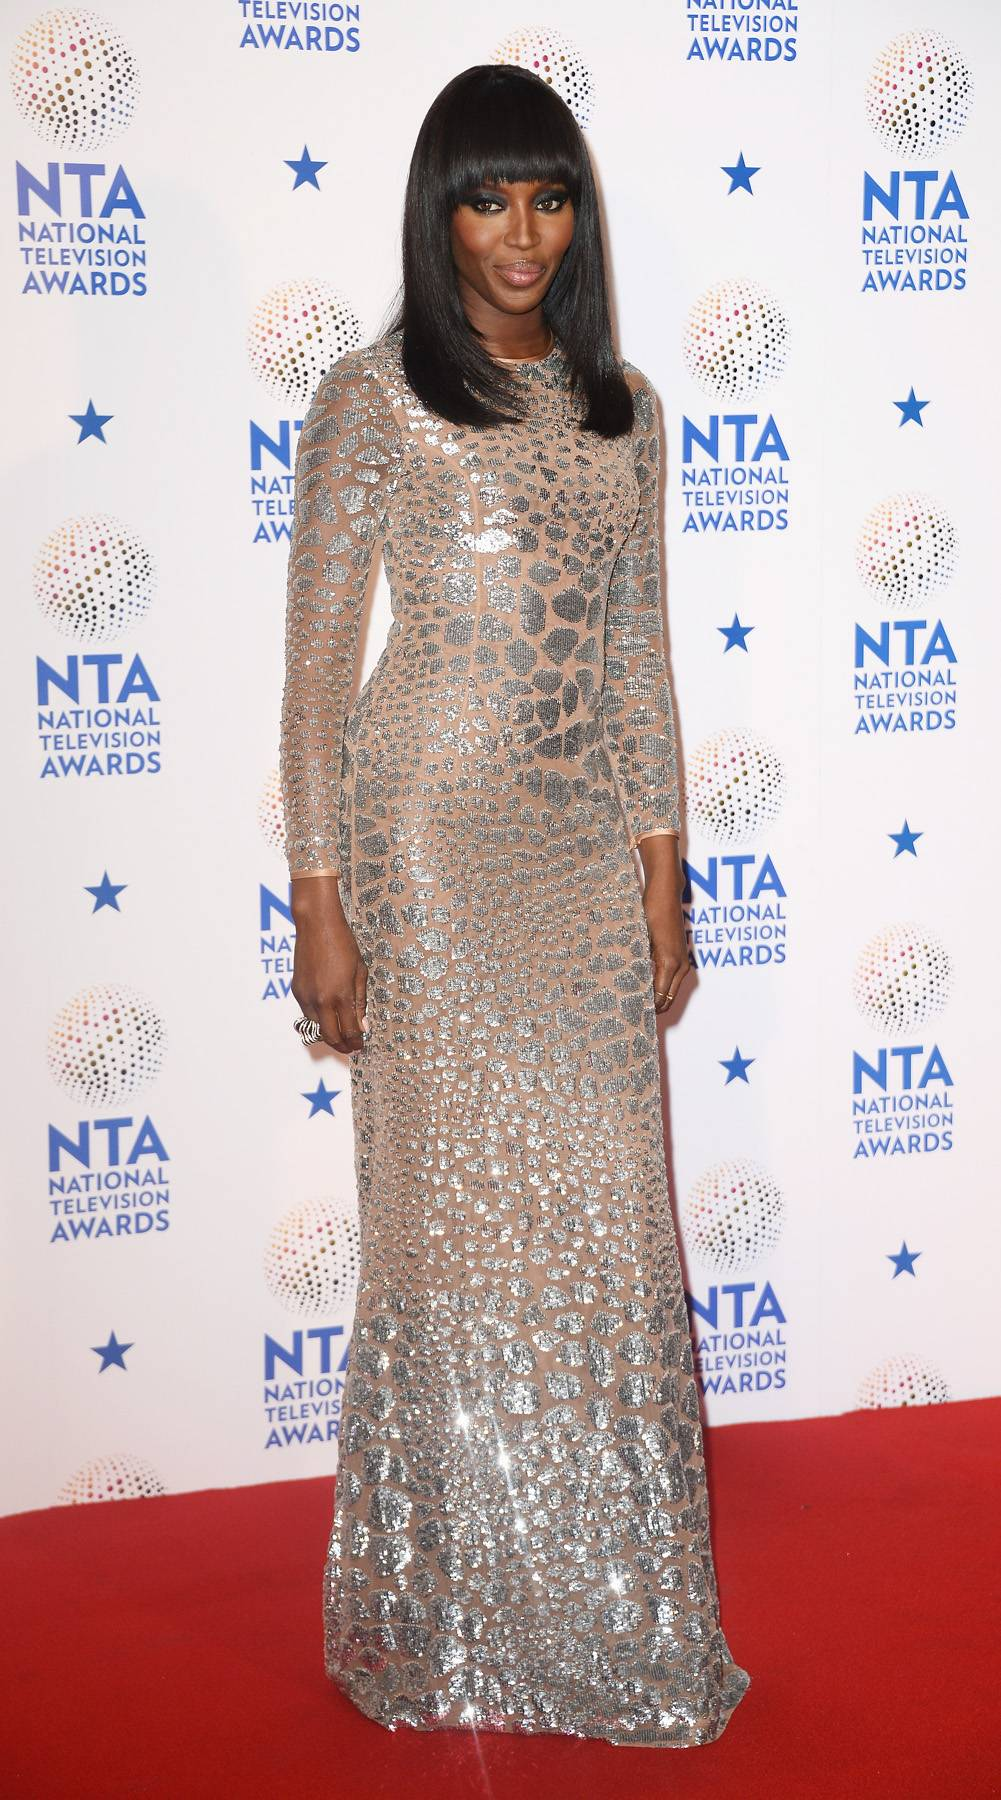 /content/dam/betcom/images/2014/01/Fashion-Beauty-01-16-01-31/012314-fashion-beauty-best-dressed-naomi-campbell.jpg